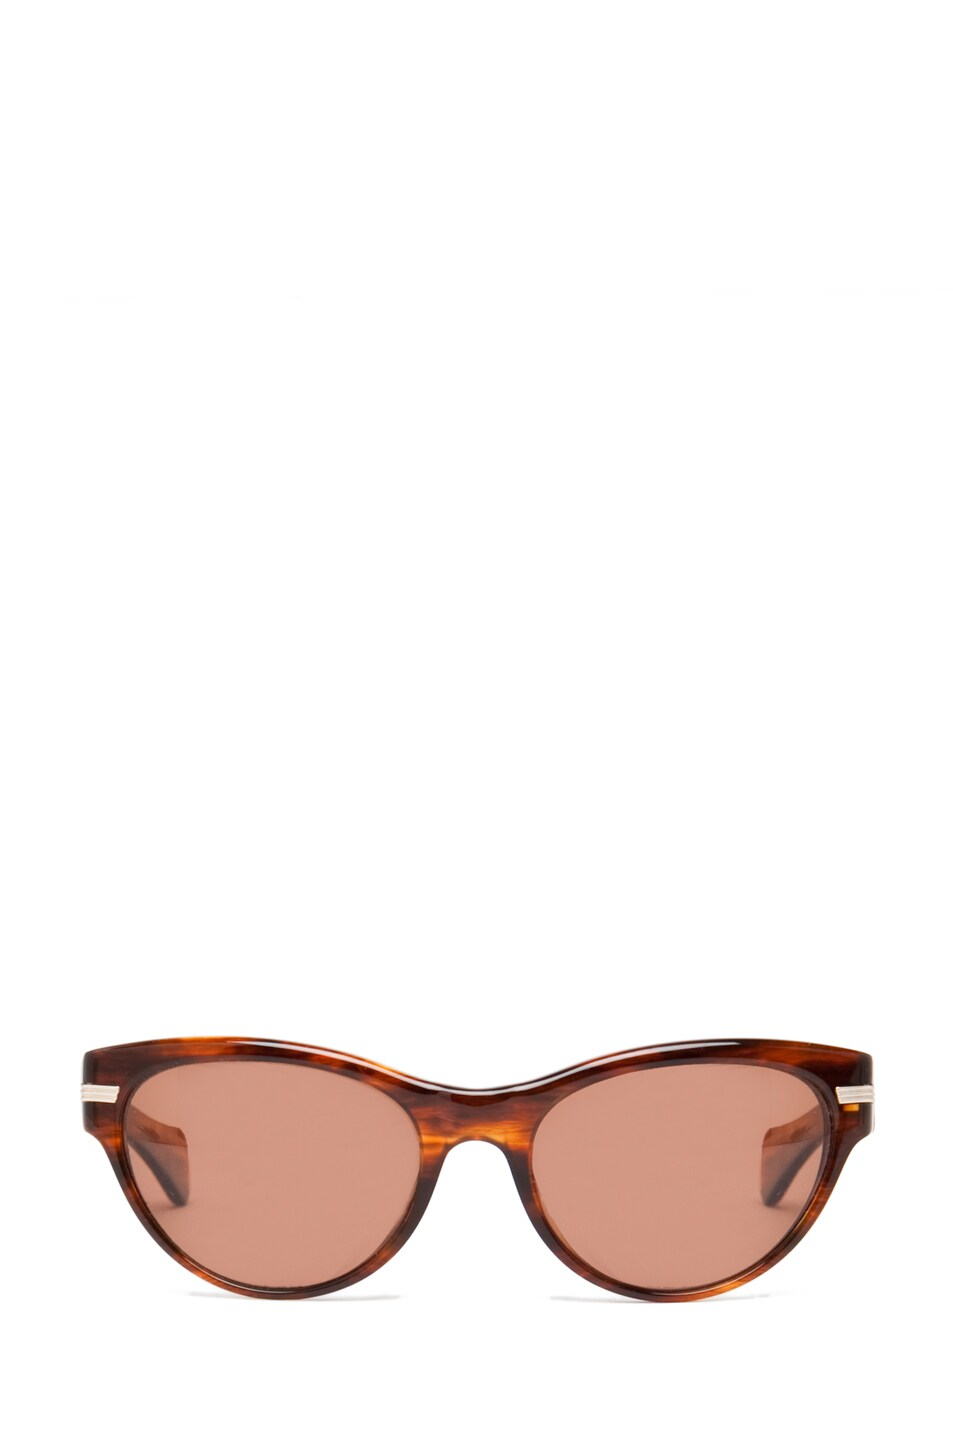 Image 1 of Oliver Peoples Kosslyn Polarized Sunglasses in Morrel Tortoise